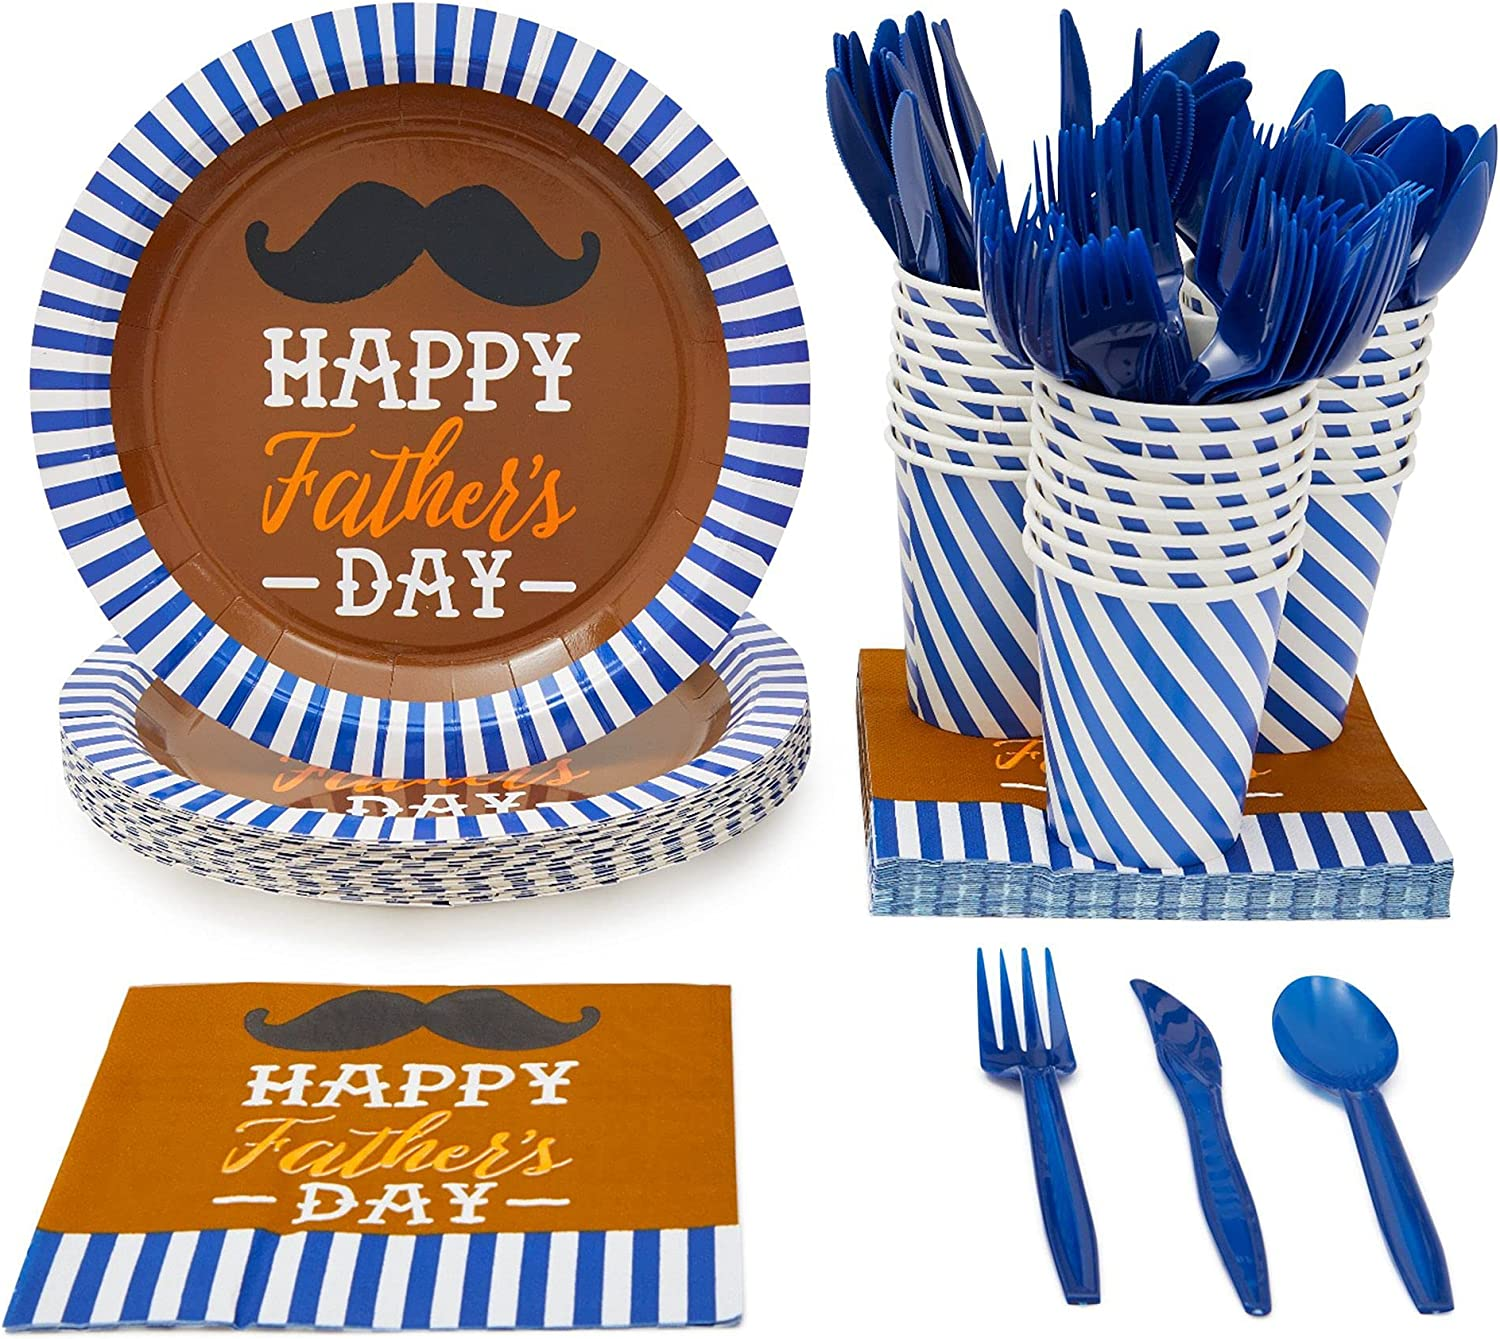 Happy Fathers Day Party Plates, Cutlery, Paper Cups, Napkins (Serves 24, 144 Pieces)